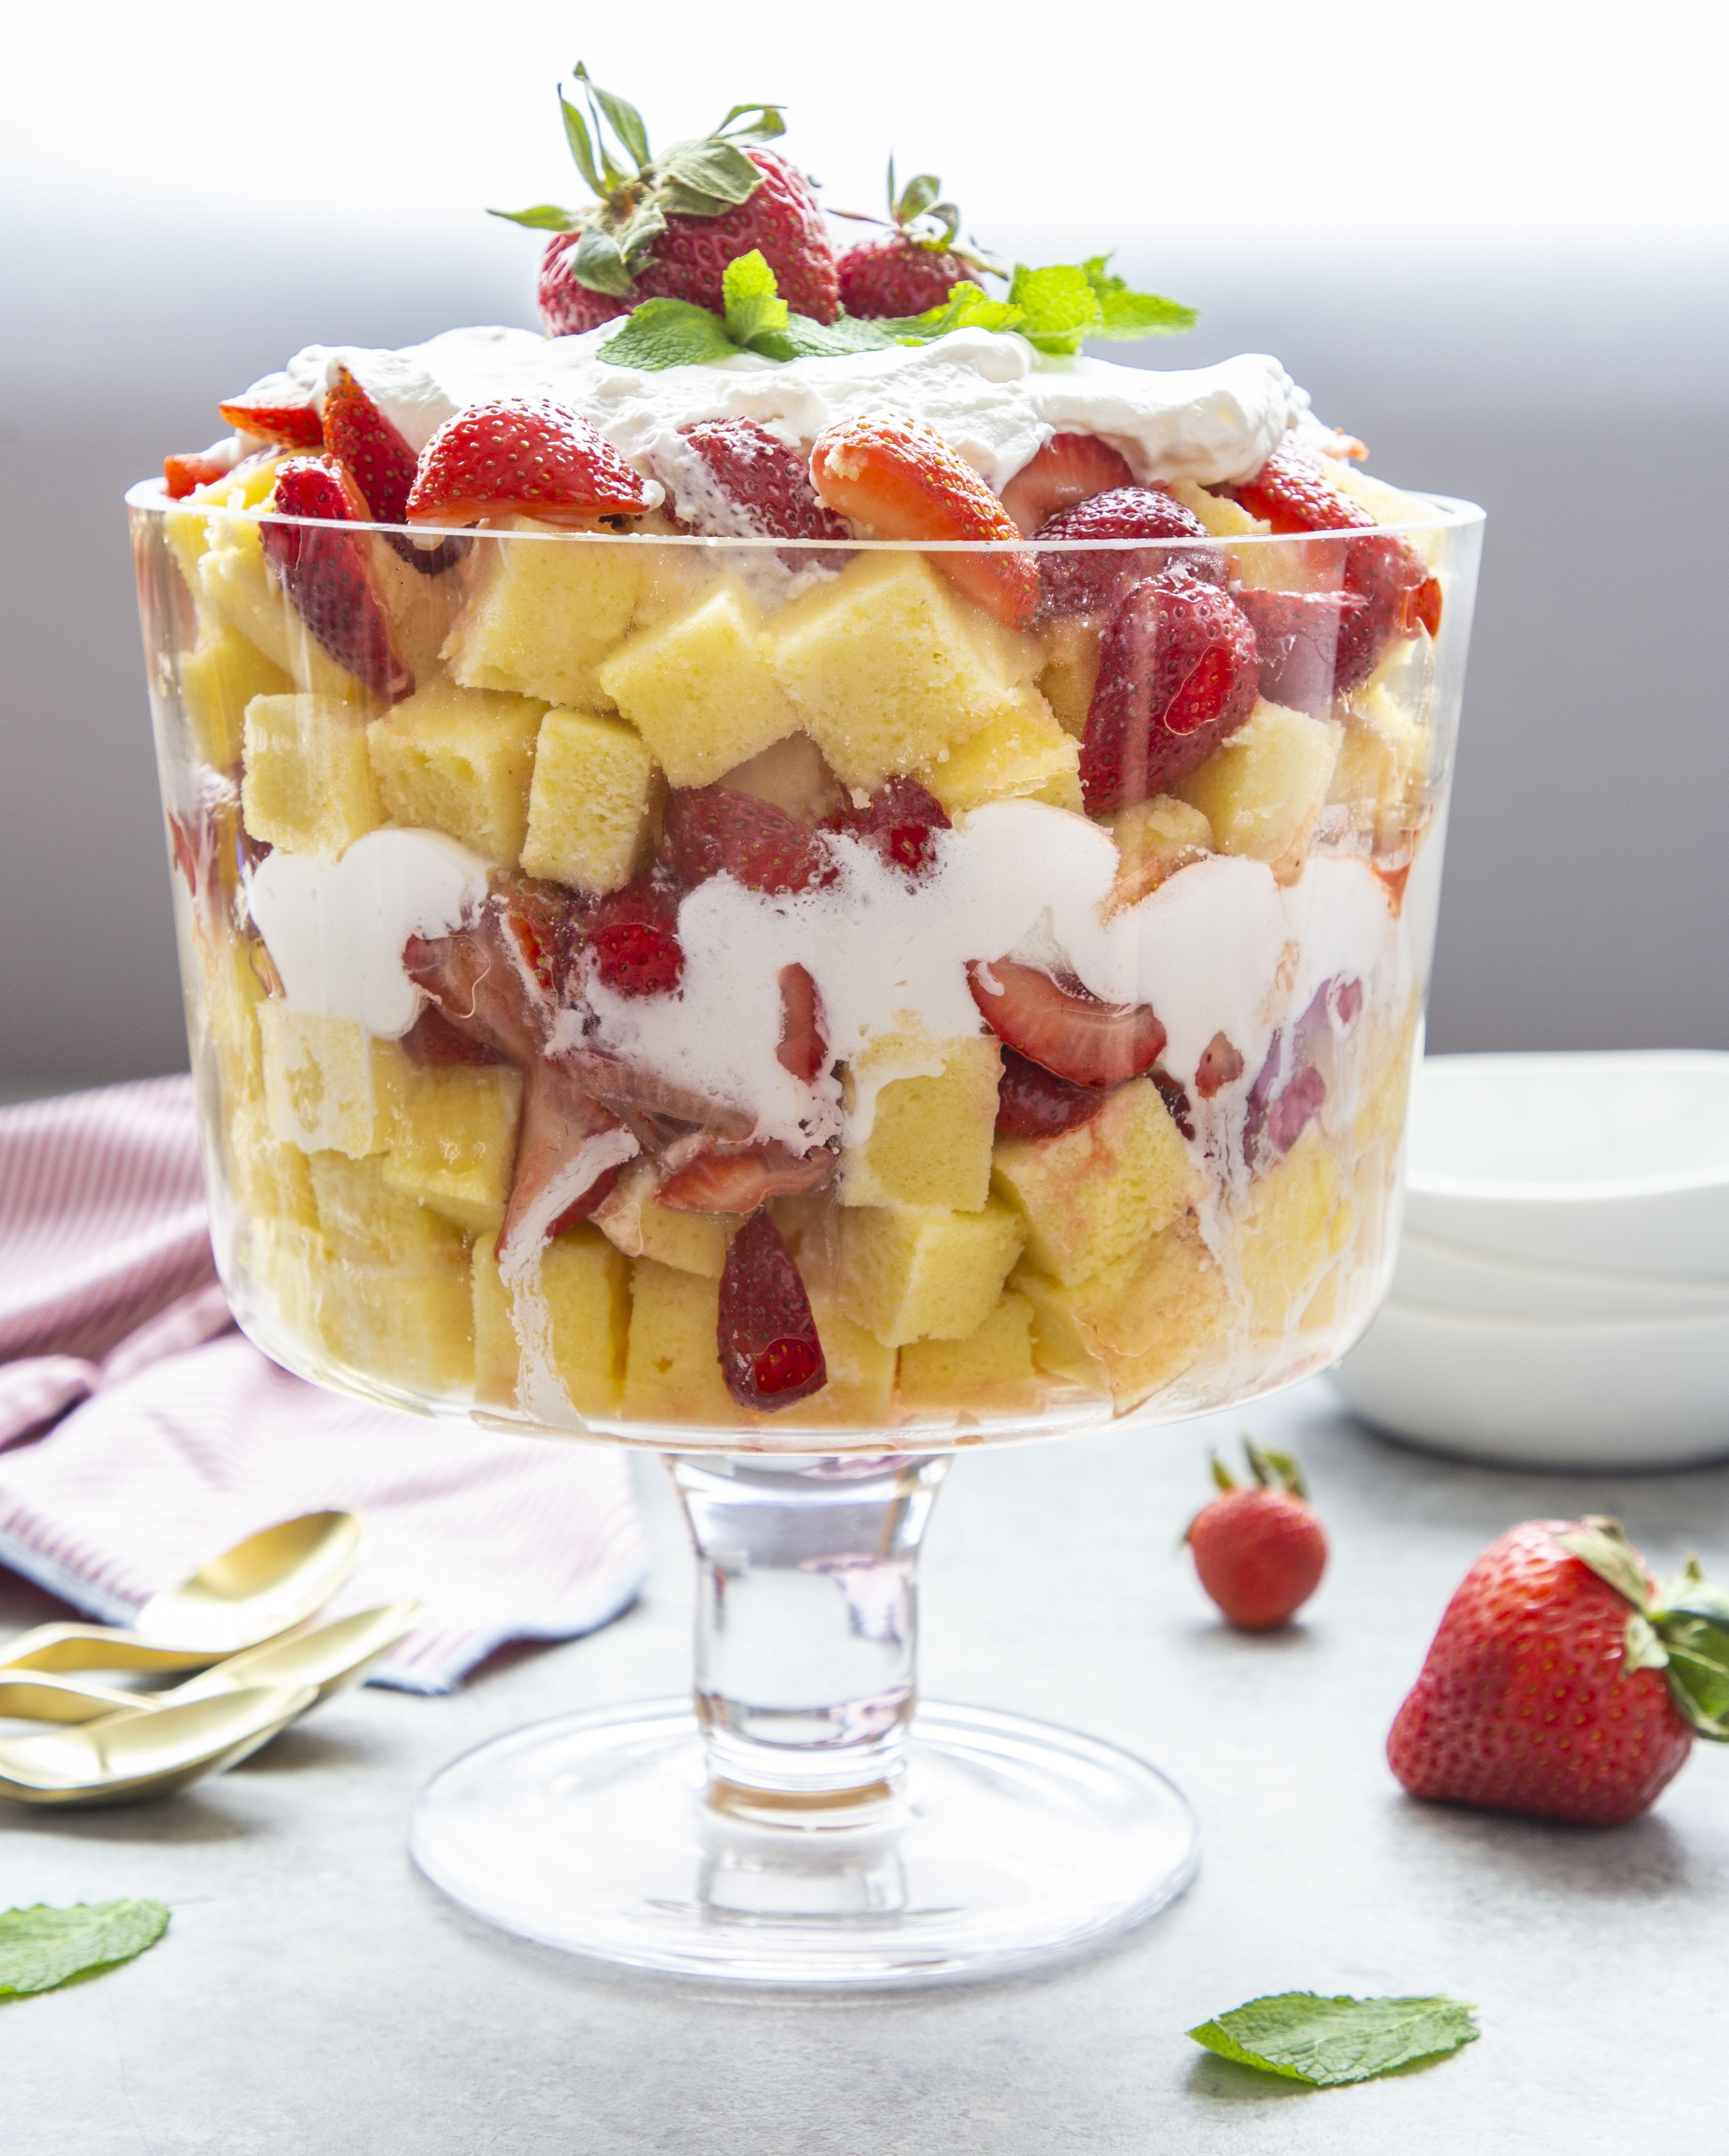 Strawberry Mango Trifle: This Strawberry Trifle With Strawberry Top-Infused Whipped